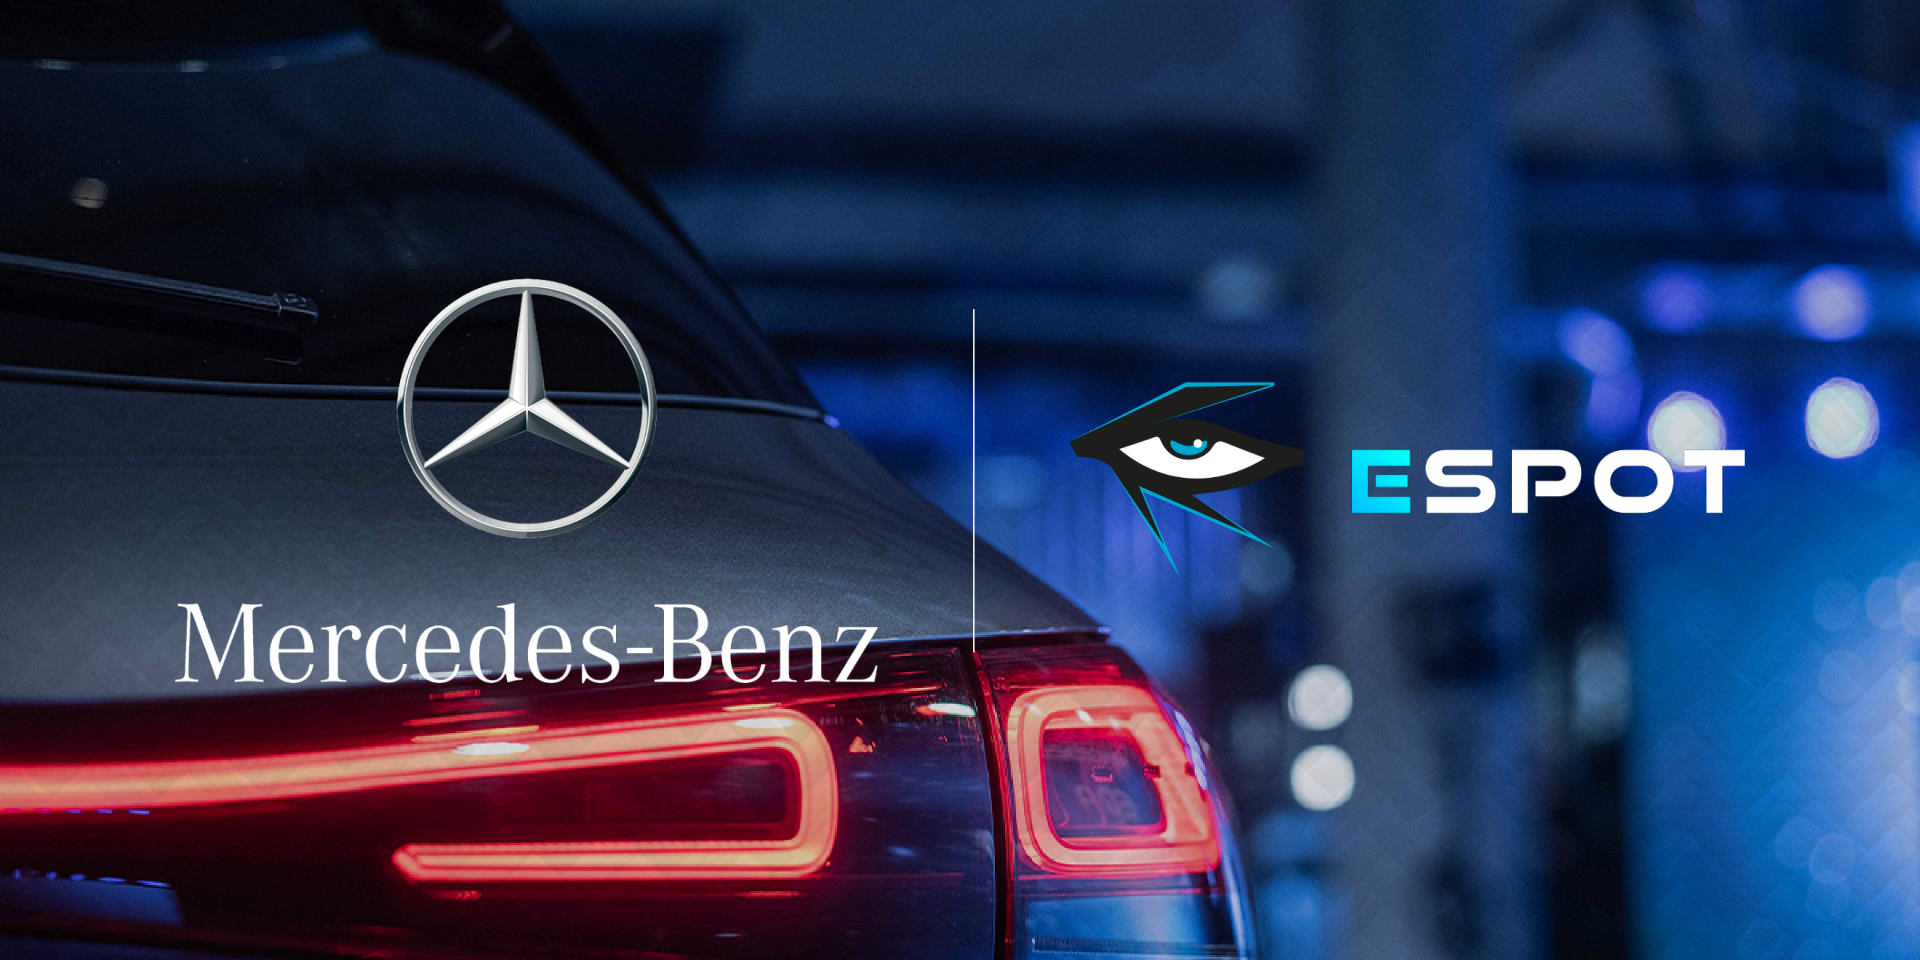 Esports venue in Warsaw renamed 'ESPOT powered by Mercedes-Benz'